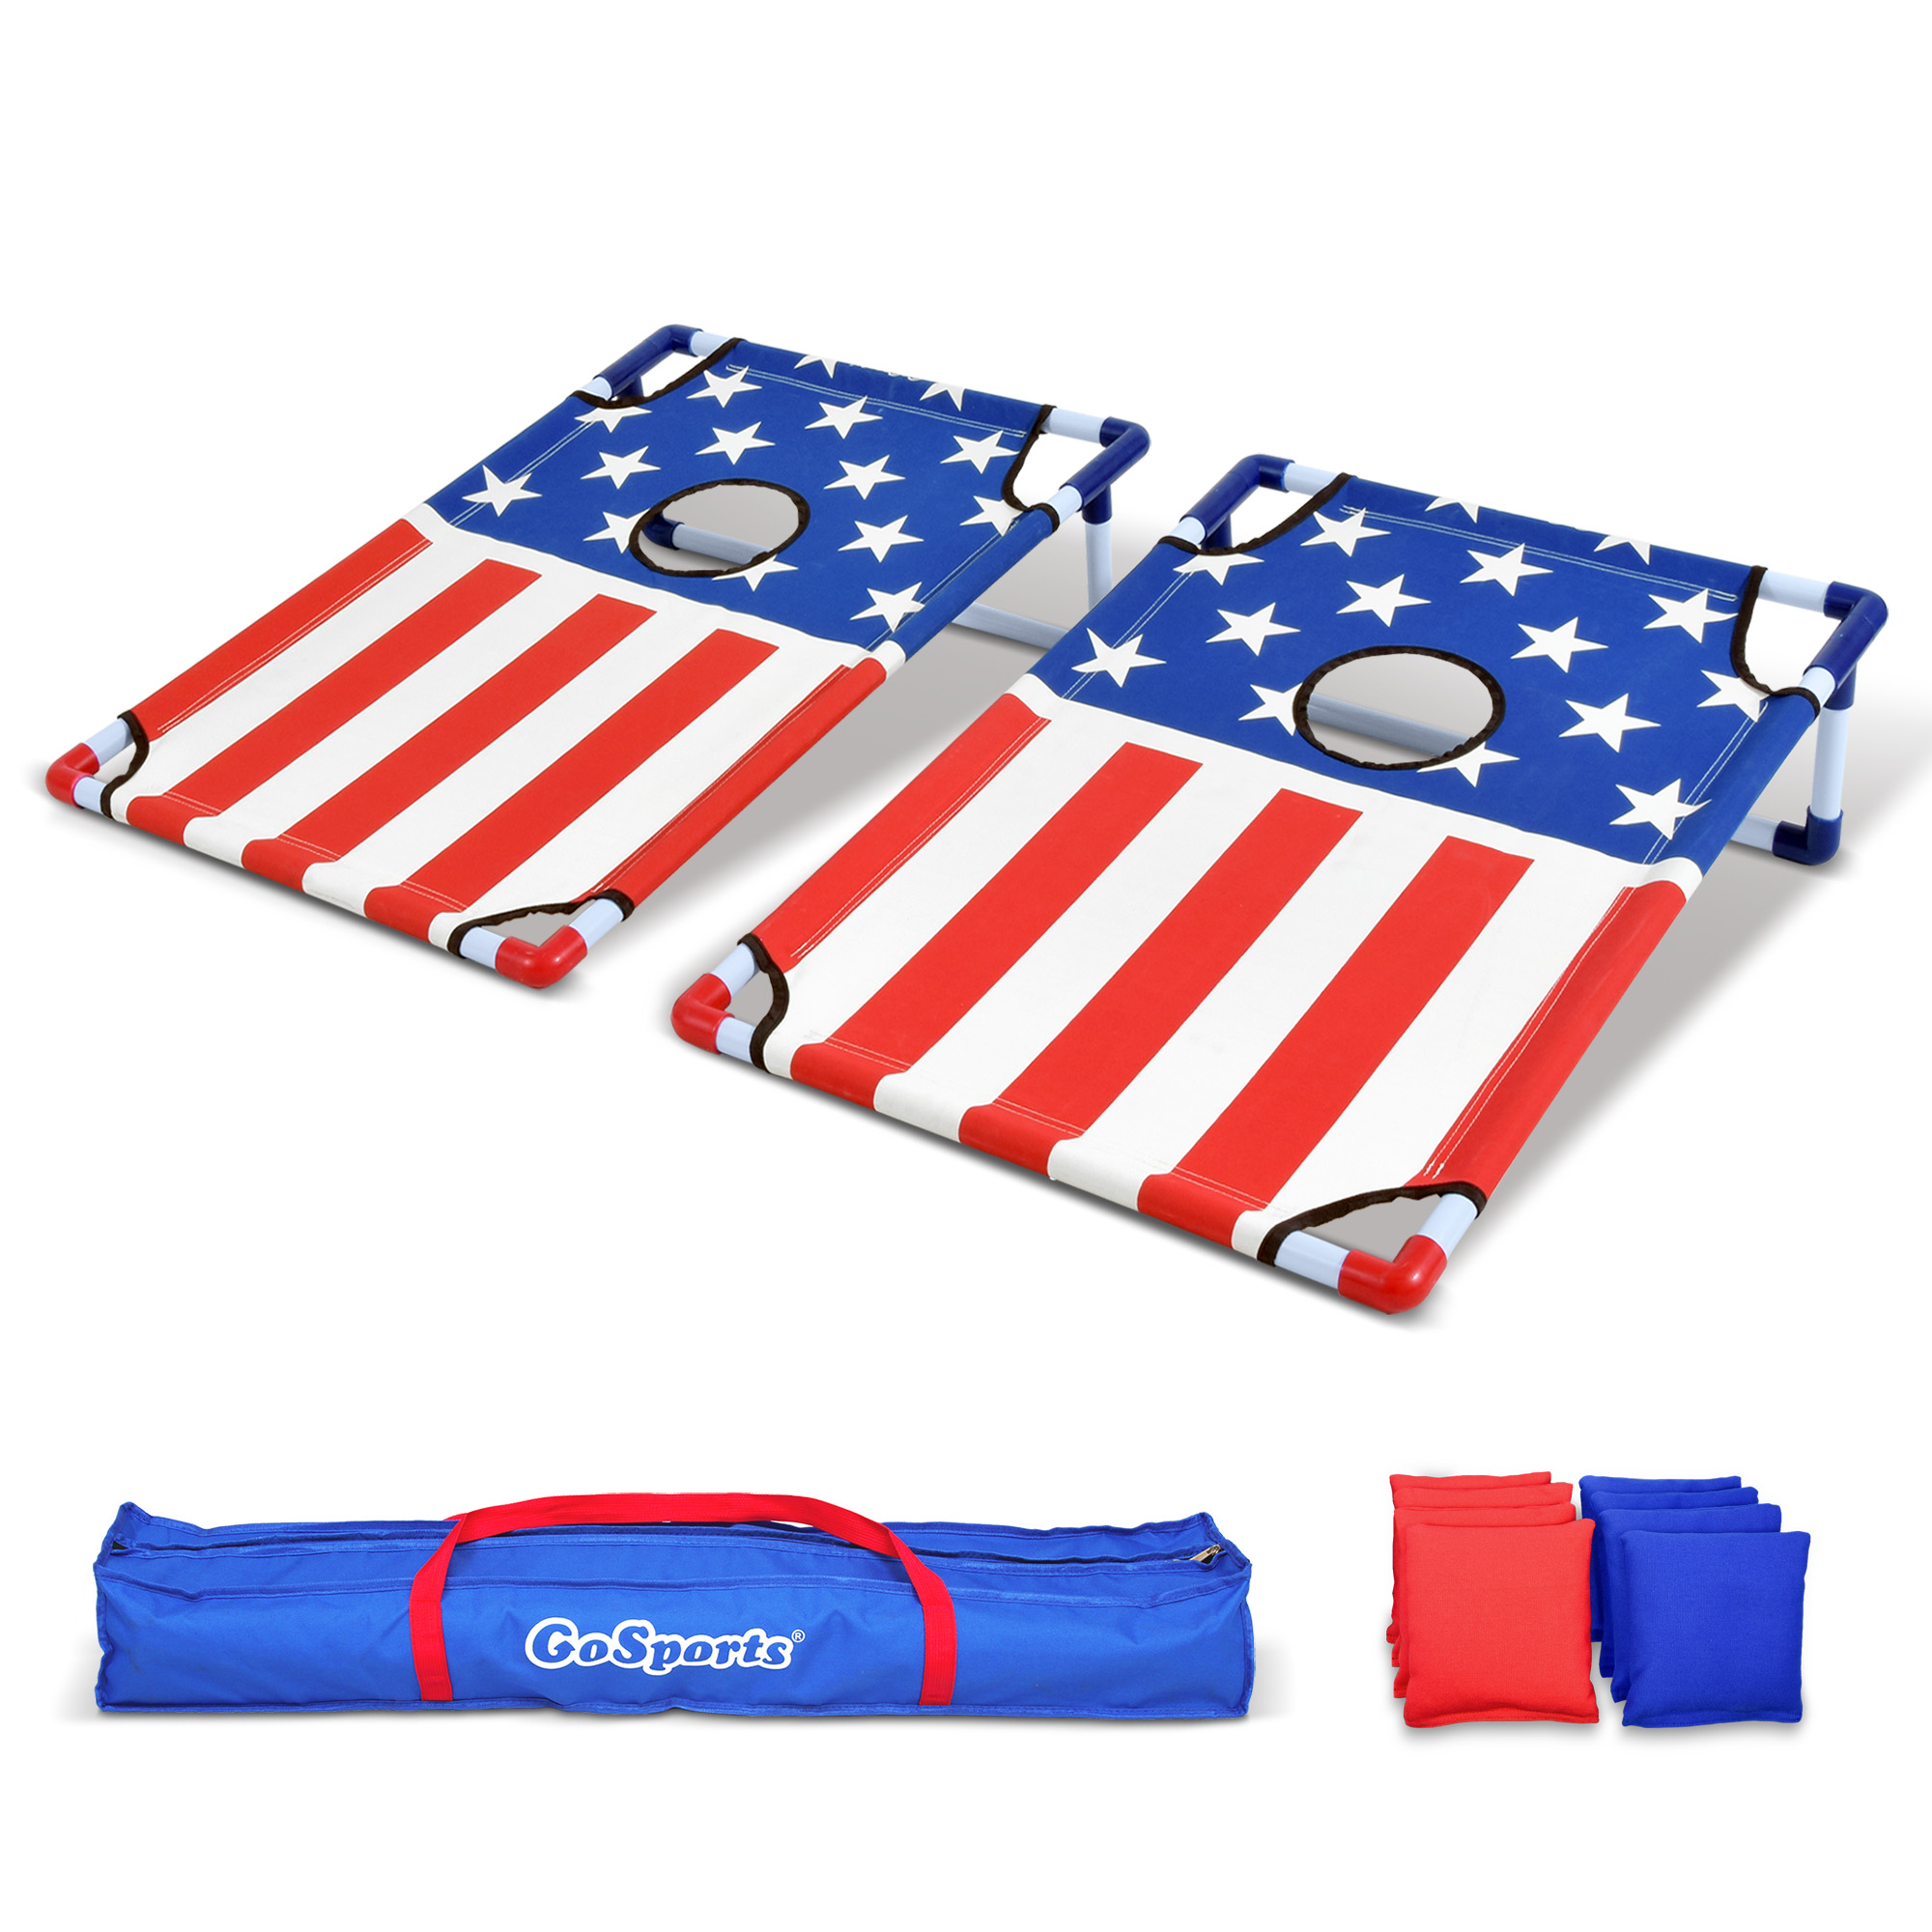 GoSports American Flag Portable PVC Framed Cornhole Game Set with 8 Beanbags & Travel... by P&P Imports LLC